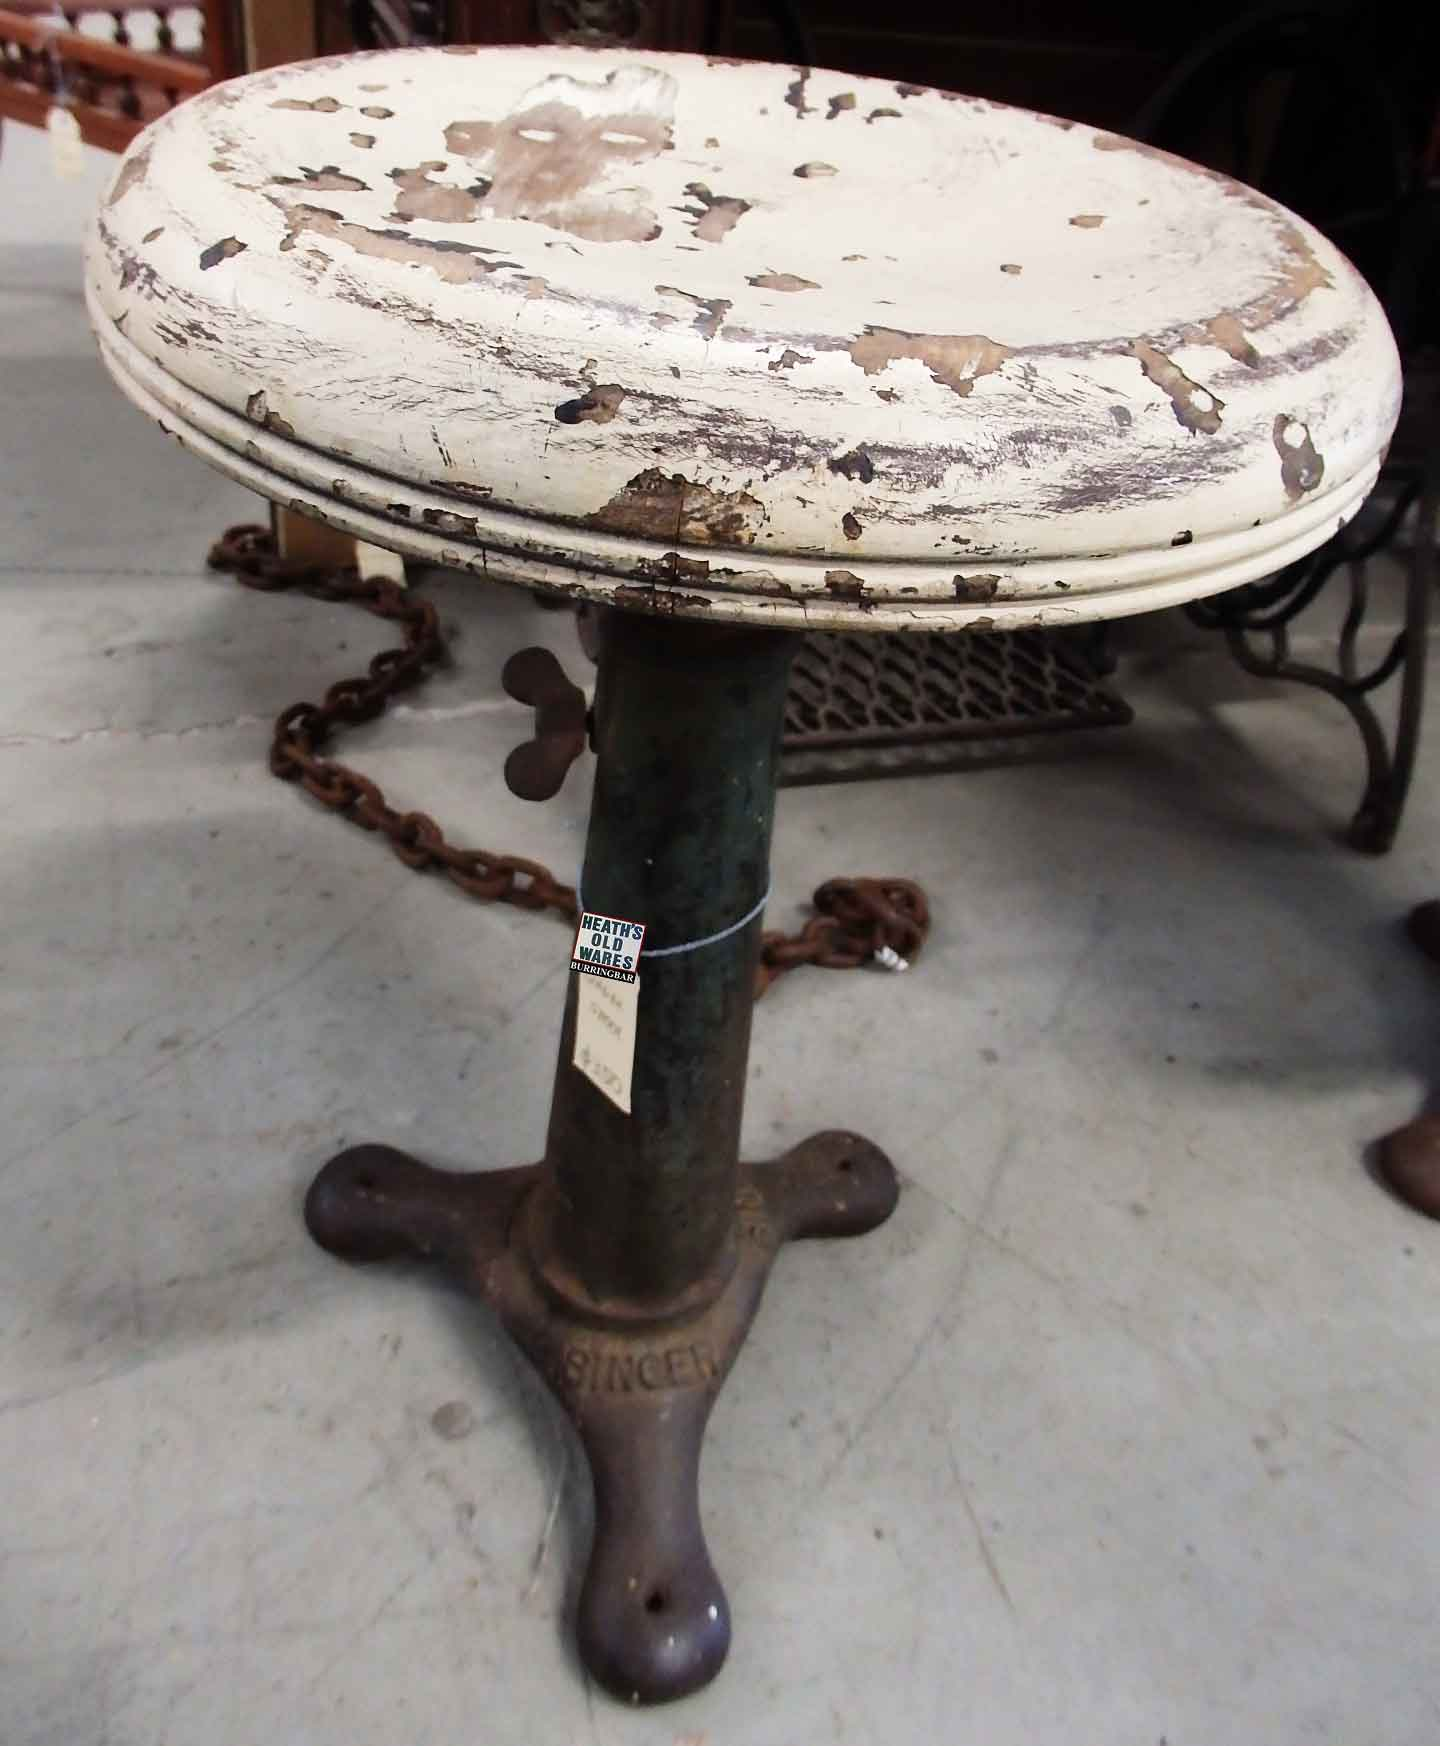 Singer Sewing Machine Stool, cast iron base, impressed with the SINGER brand $350 for sale at Heaths Old Wares, Collectables, Antiques & Industrial Antiques, 19-21 Broadway, Burringbar NSW 2483 Ph 0266771181 open 7 days